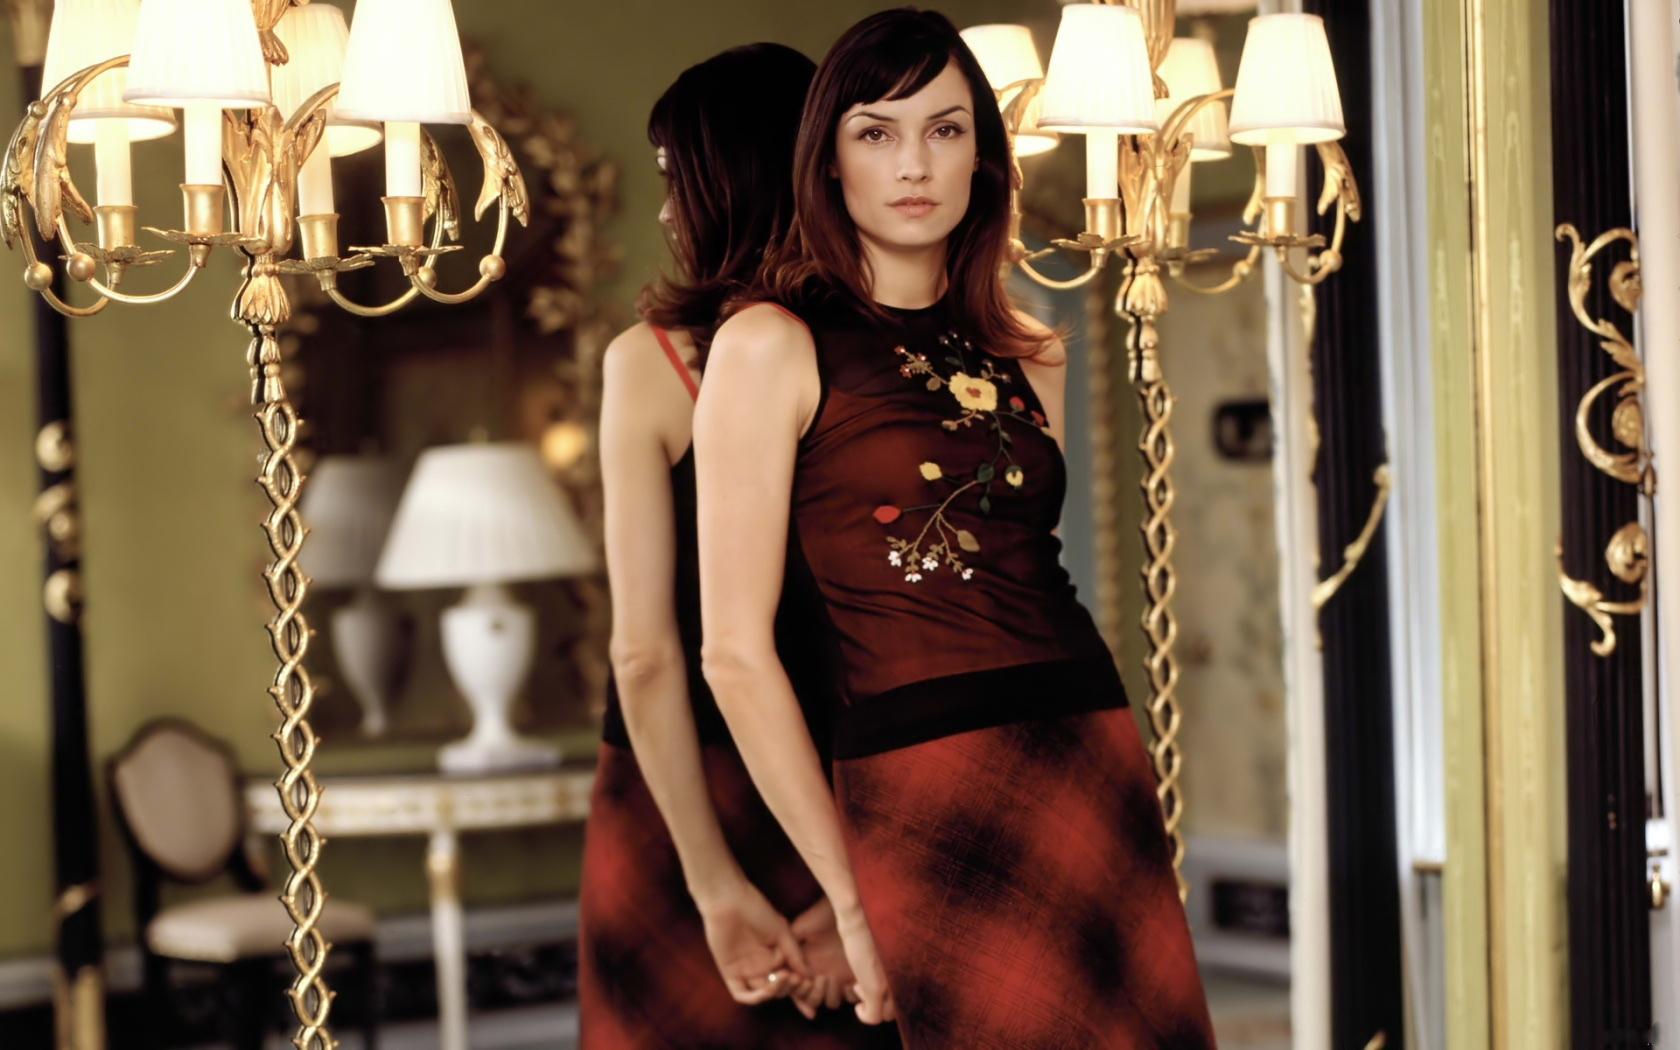 famke janssen any wg HD Wallpaper